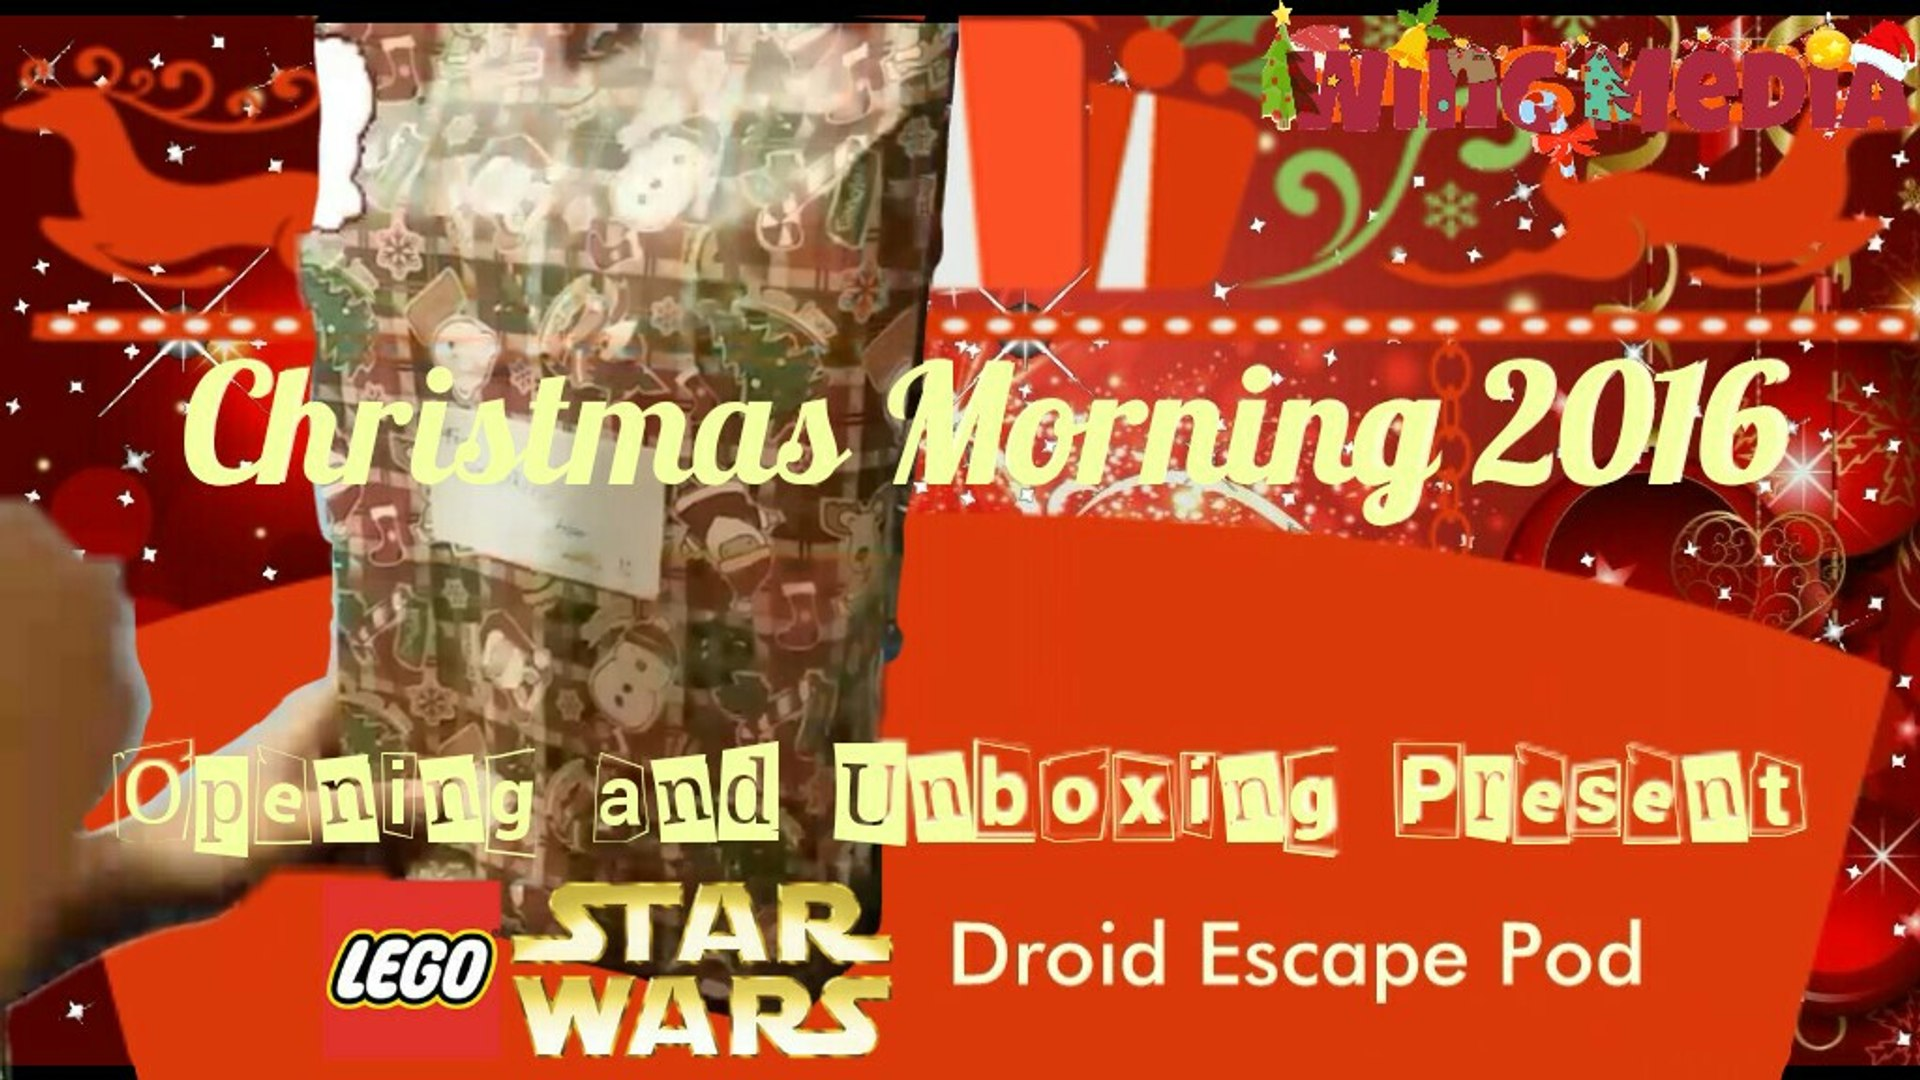 Christmas Morning 2016 Opening Present Lego Star Wars - Droid Escape Pod